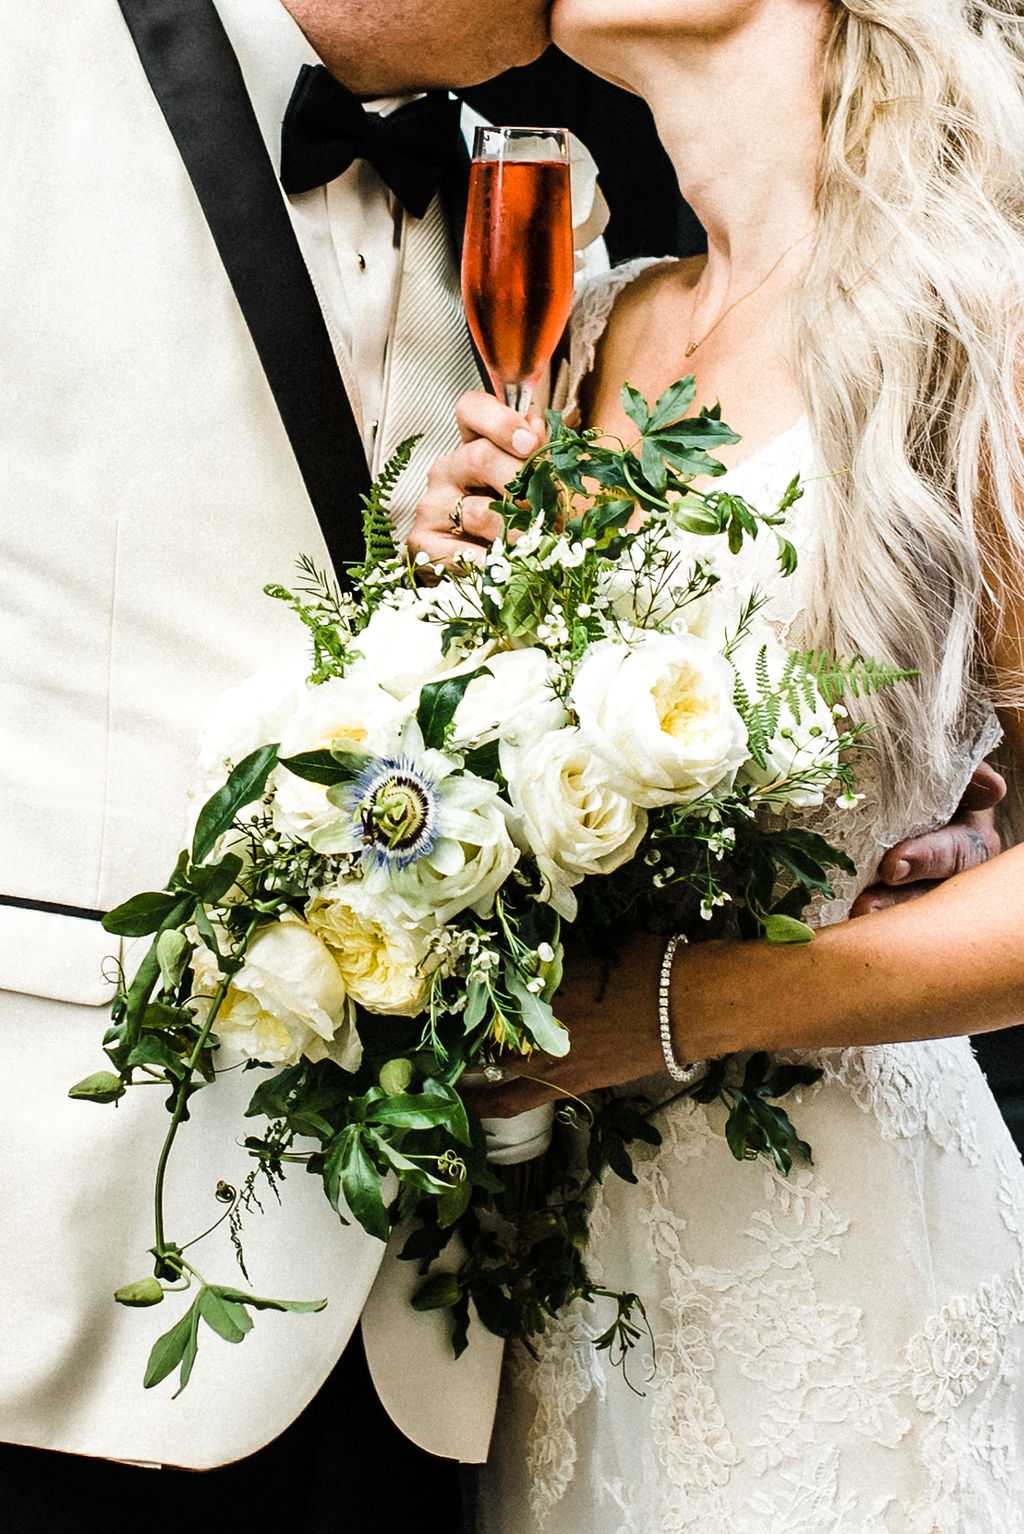 Melanie's passion flower, white rose and greenery bouquet designed by Ruth L. - Pearl Weddings & Events